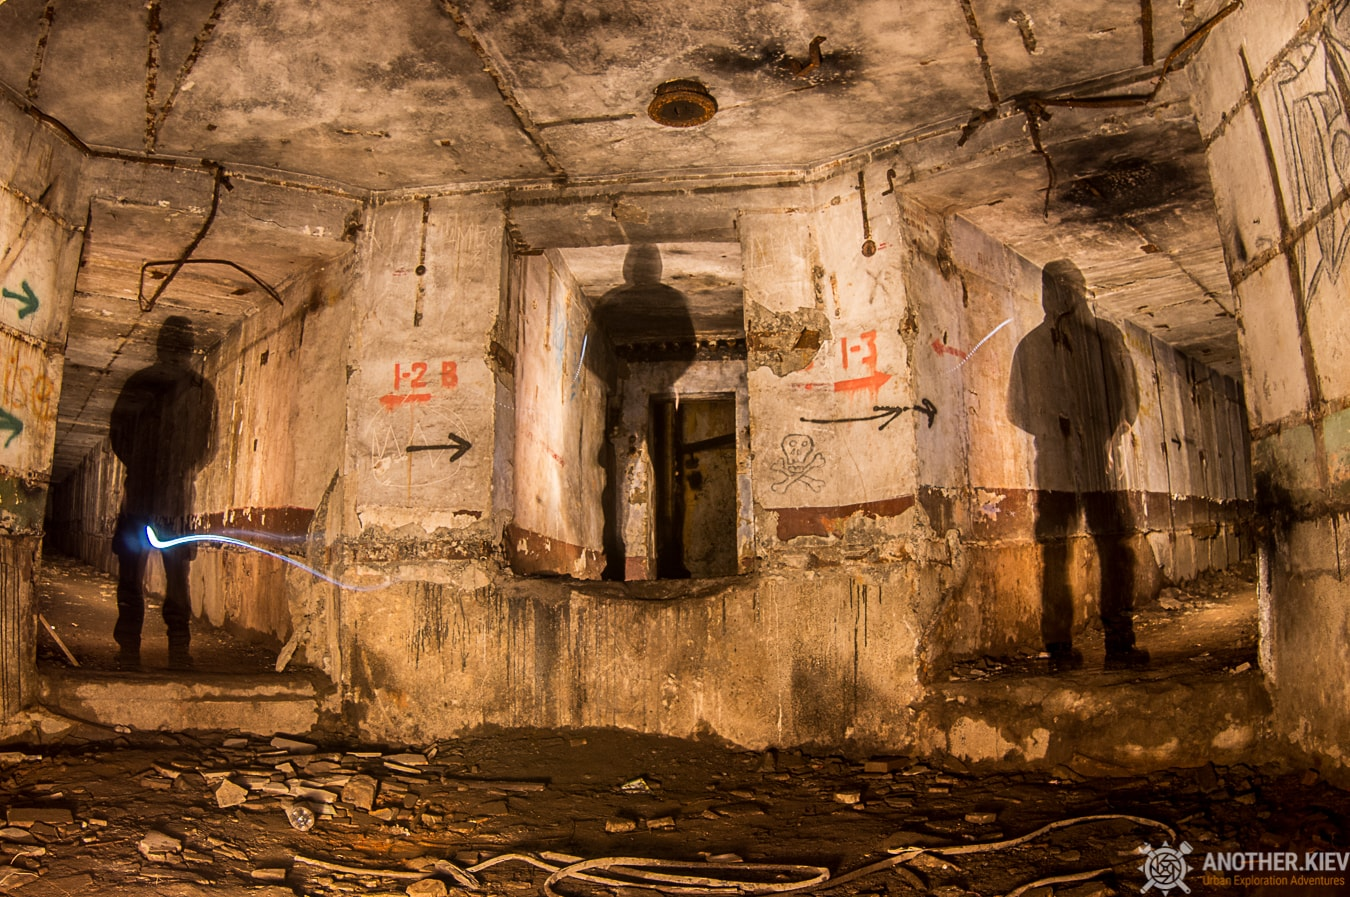 silhouettes three tunnels in abandoned missile position